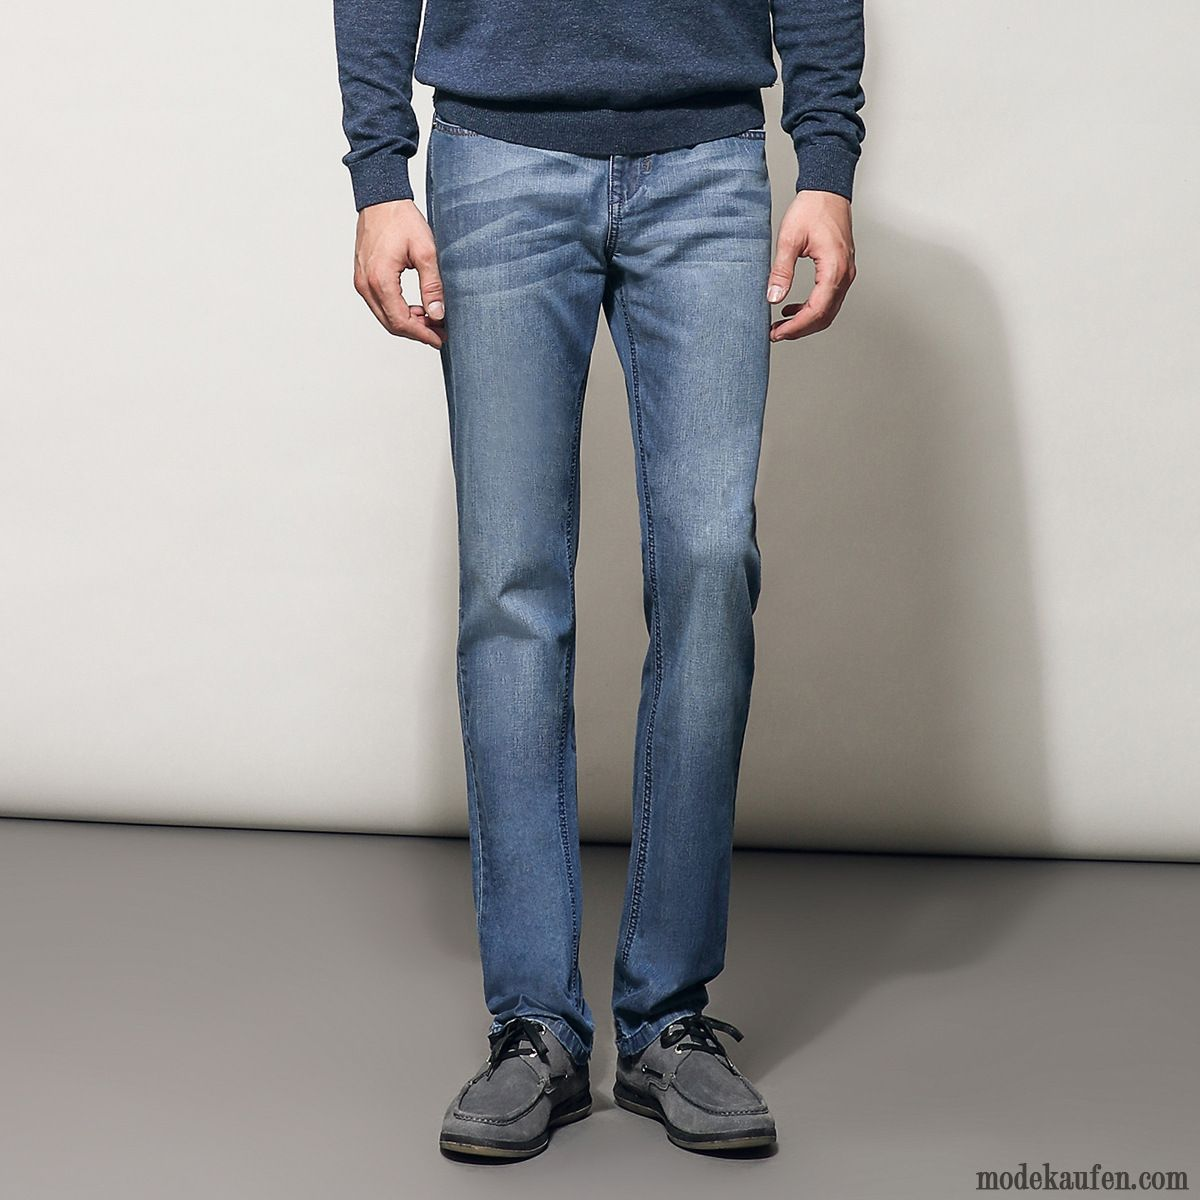 Jeans Destroyed Look Herren Günstig, Low Waist Jeans Herren Marineblau